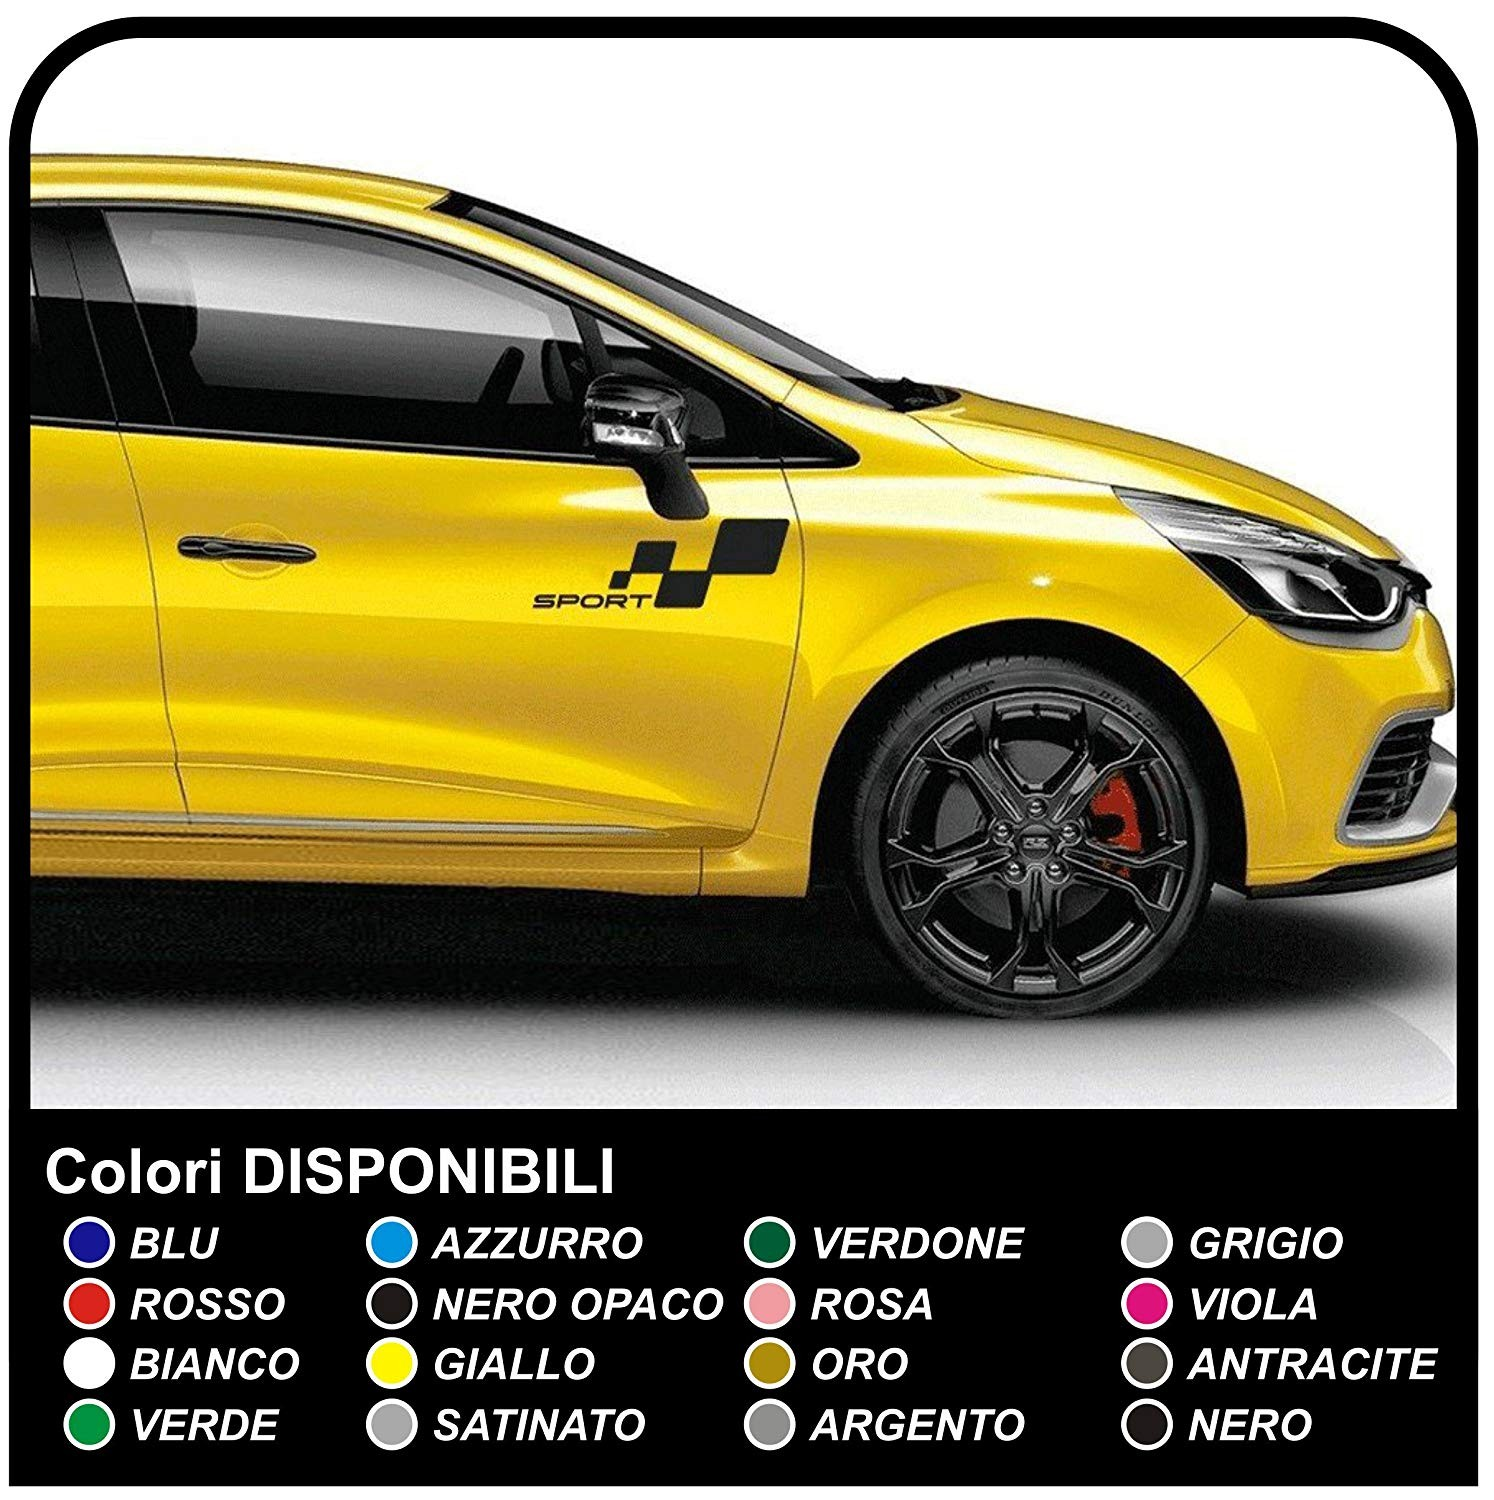 Stickers For The Renault Clio Rs Clio Williams Clio 2 0 Rs Sport New Clio Graphic Set Stickers Clio